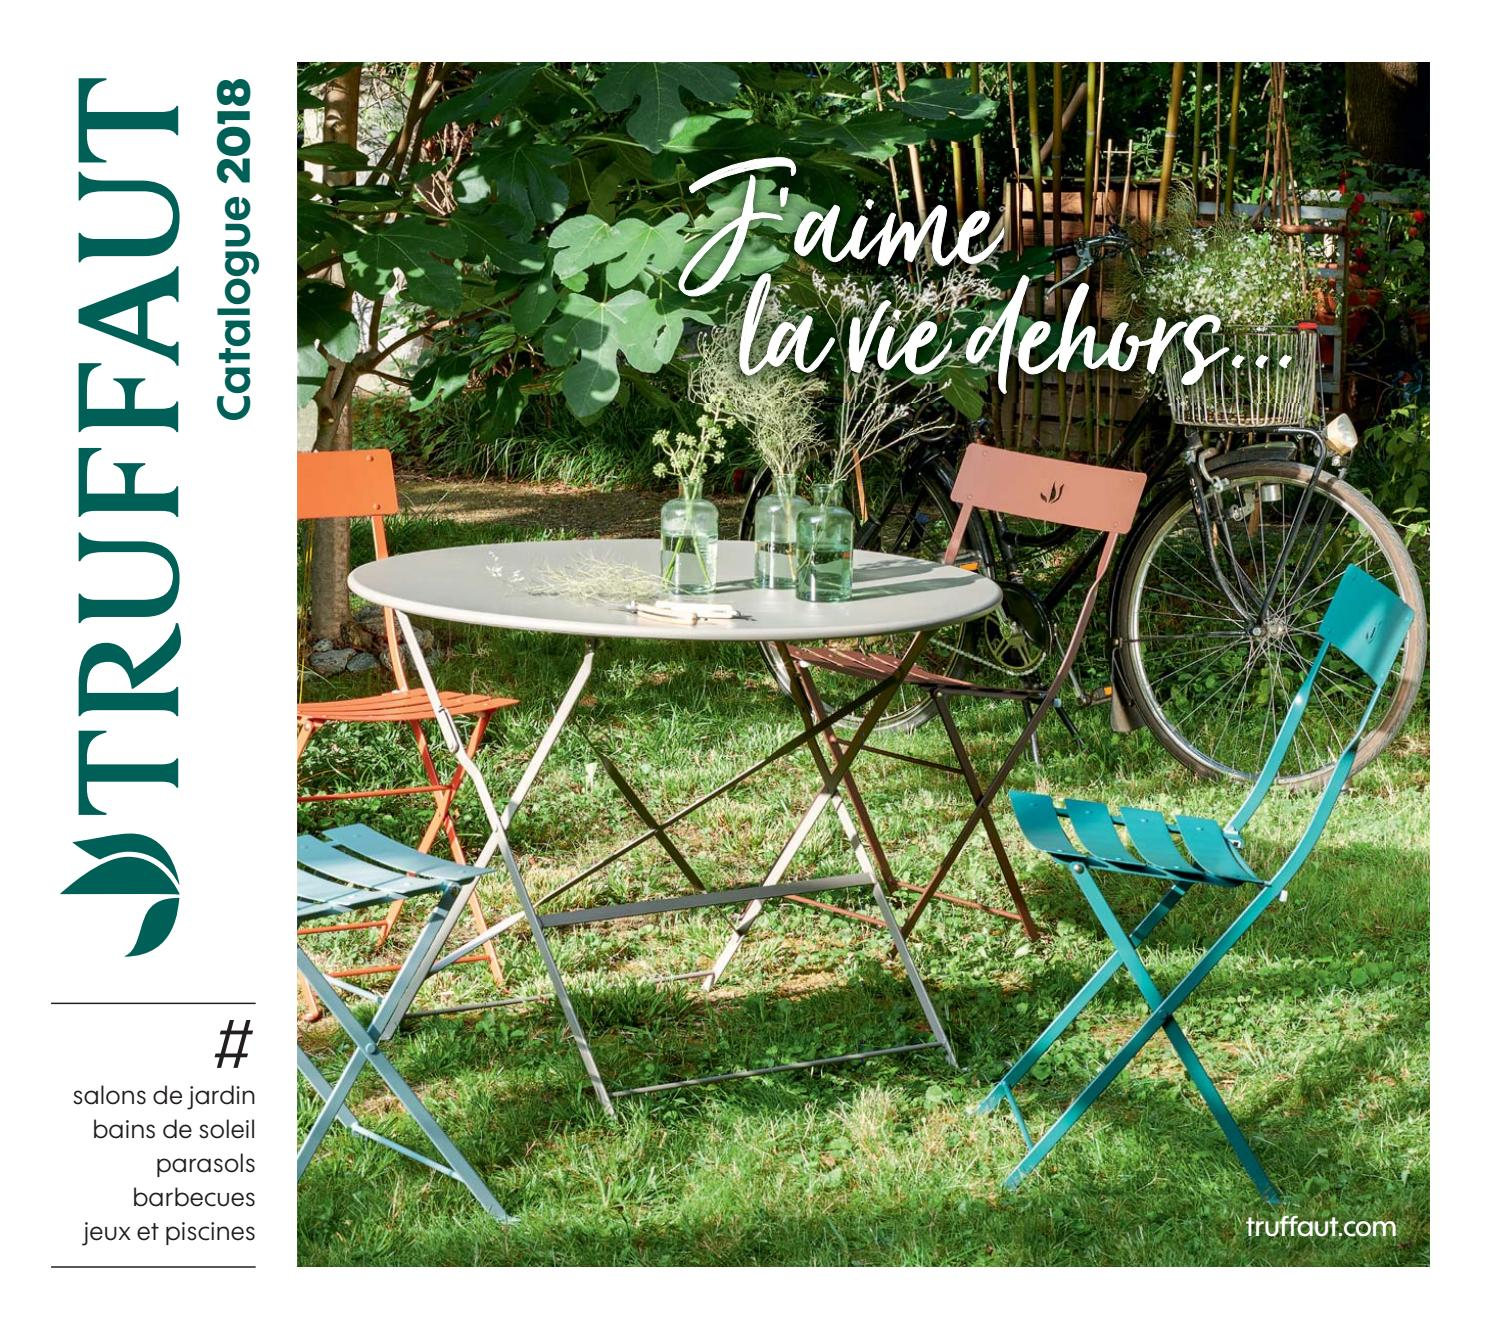 Catalogue Mobilier De Jardin Et Barbecue Ete 2018 Jardinerie Truffaut By Truffaut Issuu